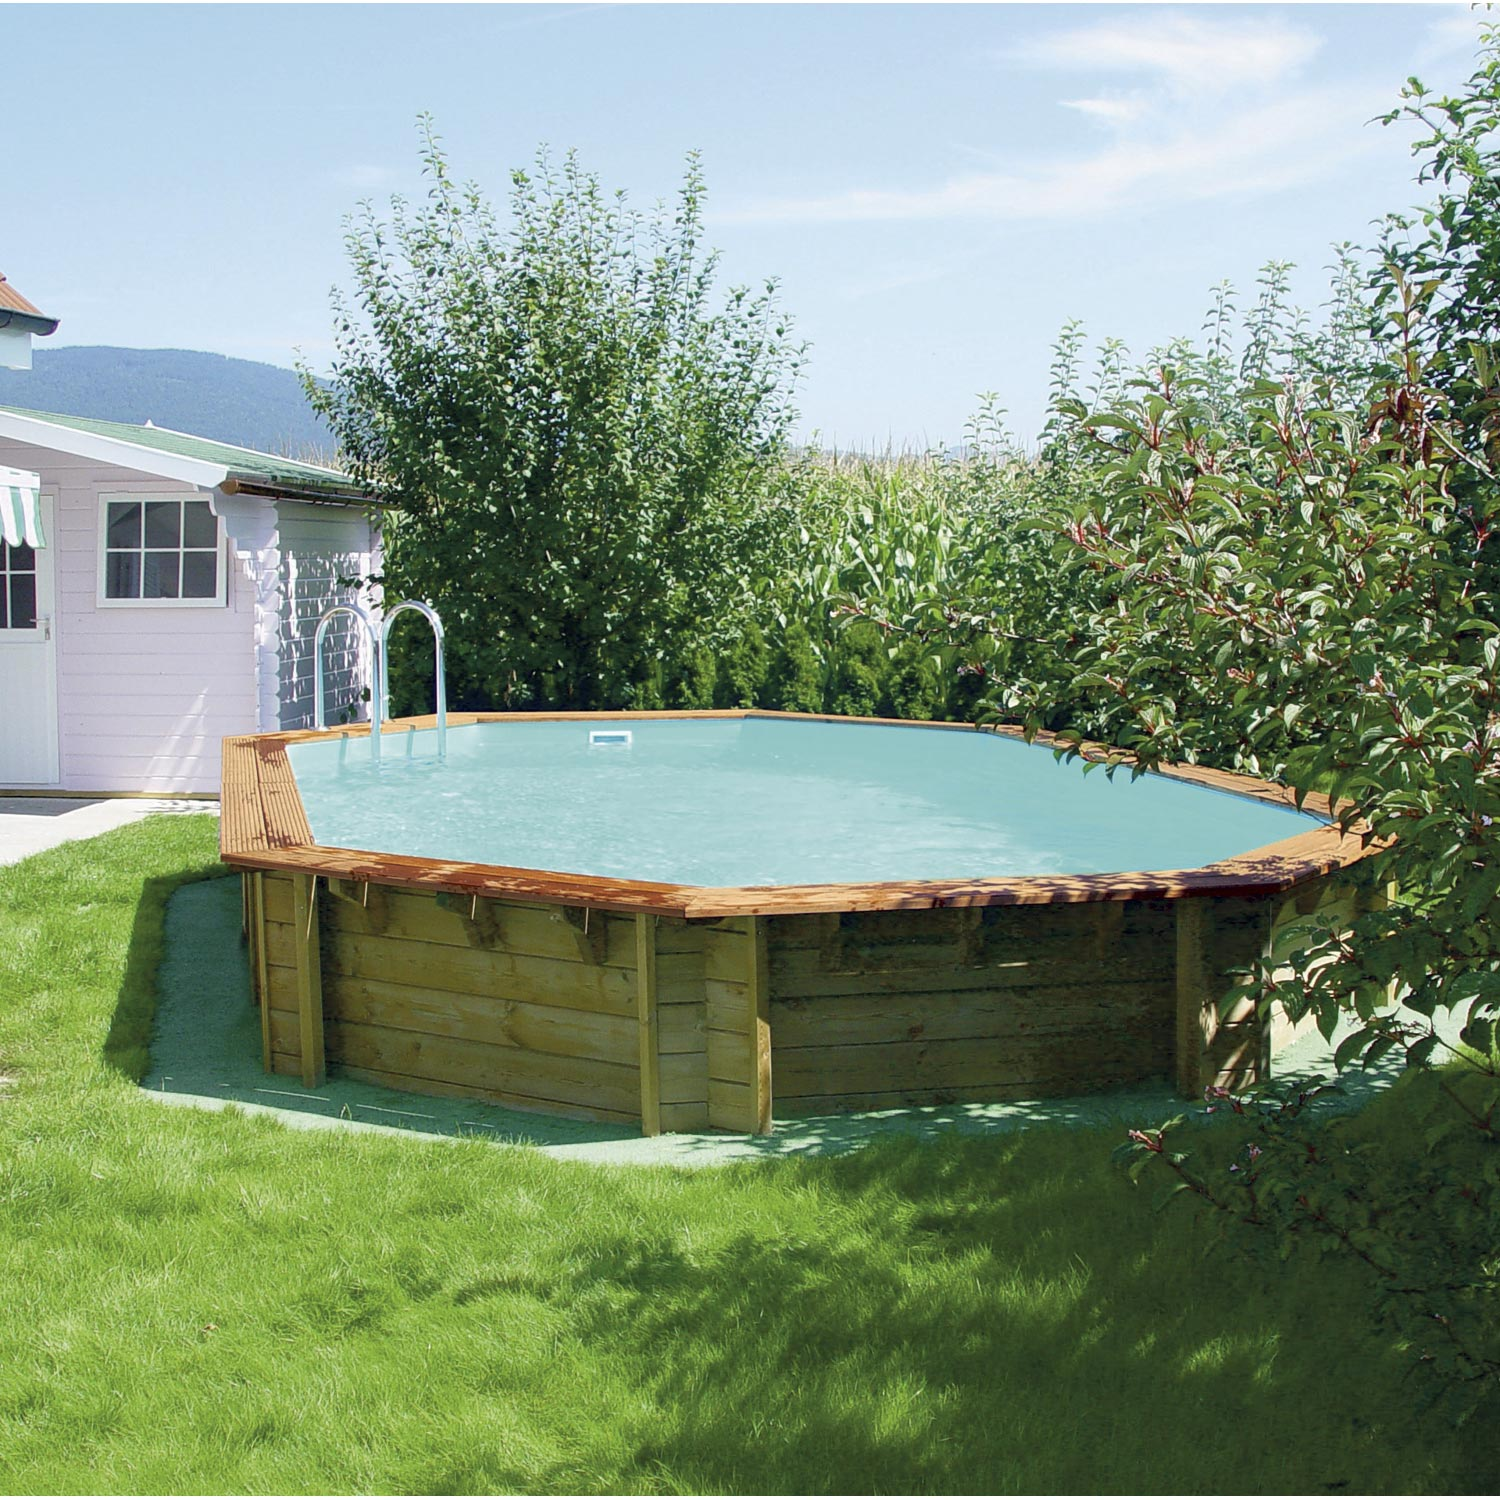 Piscines bois leroy merlin for Piscine semi enterree en bois leroy merlin